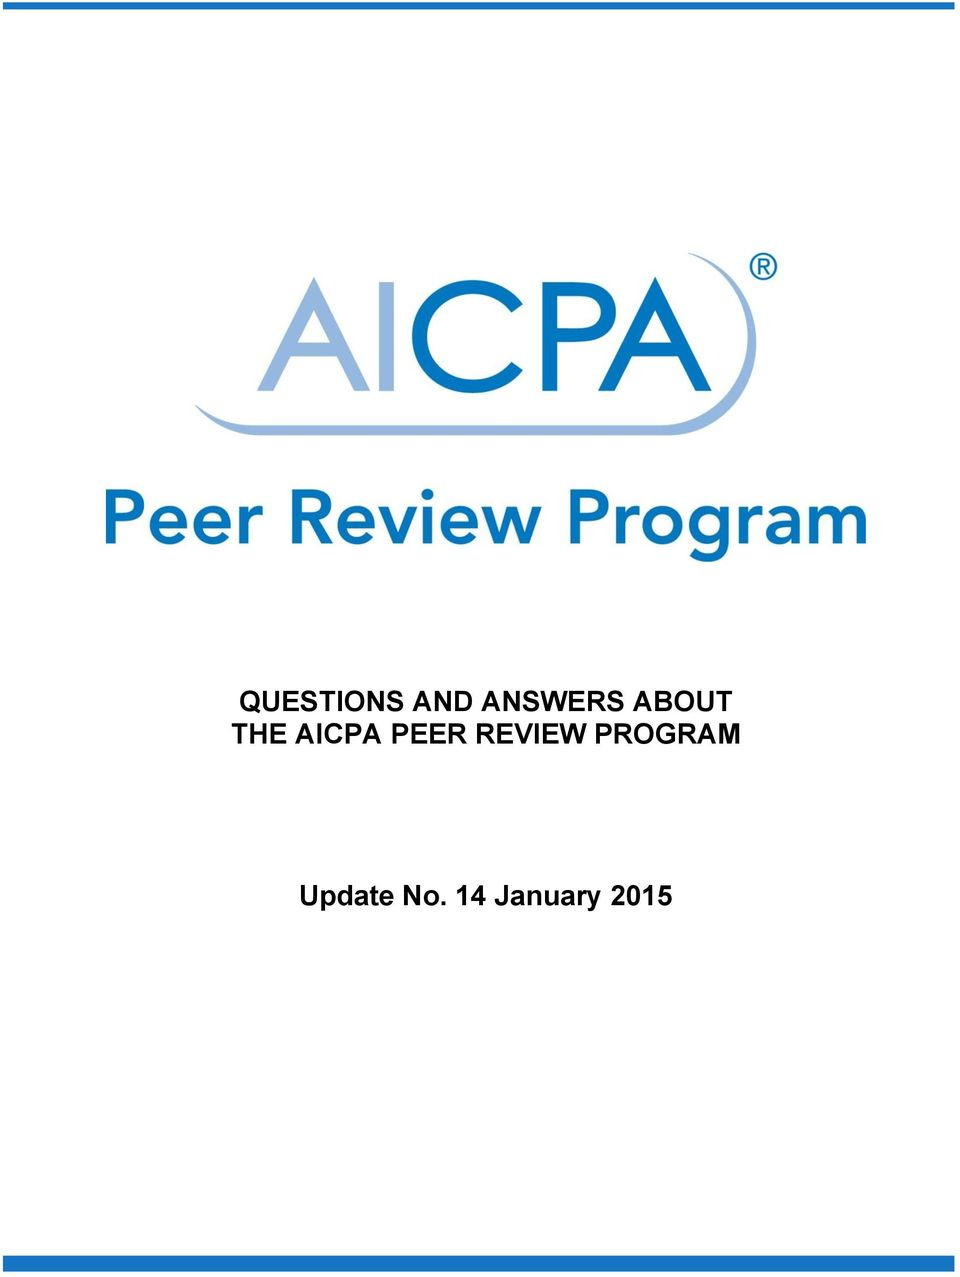 AICPA PEER REVIEW